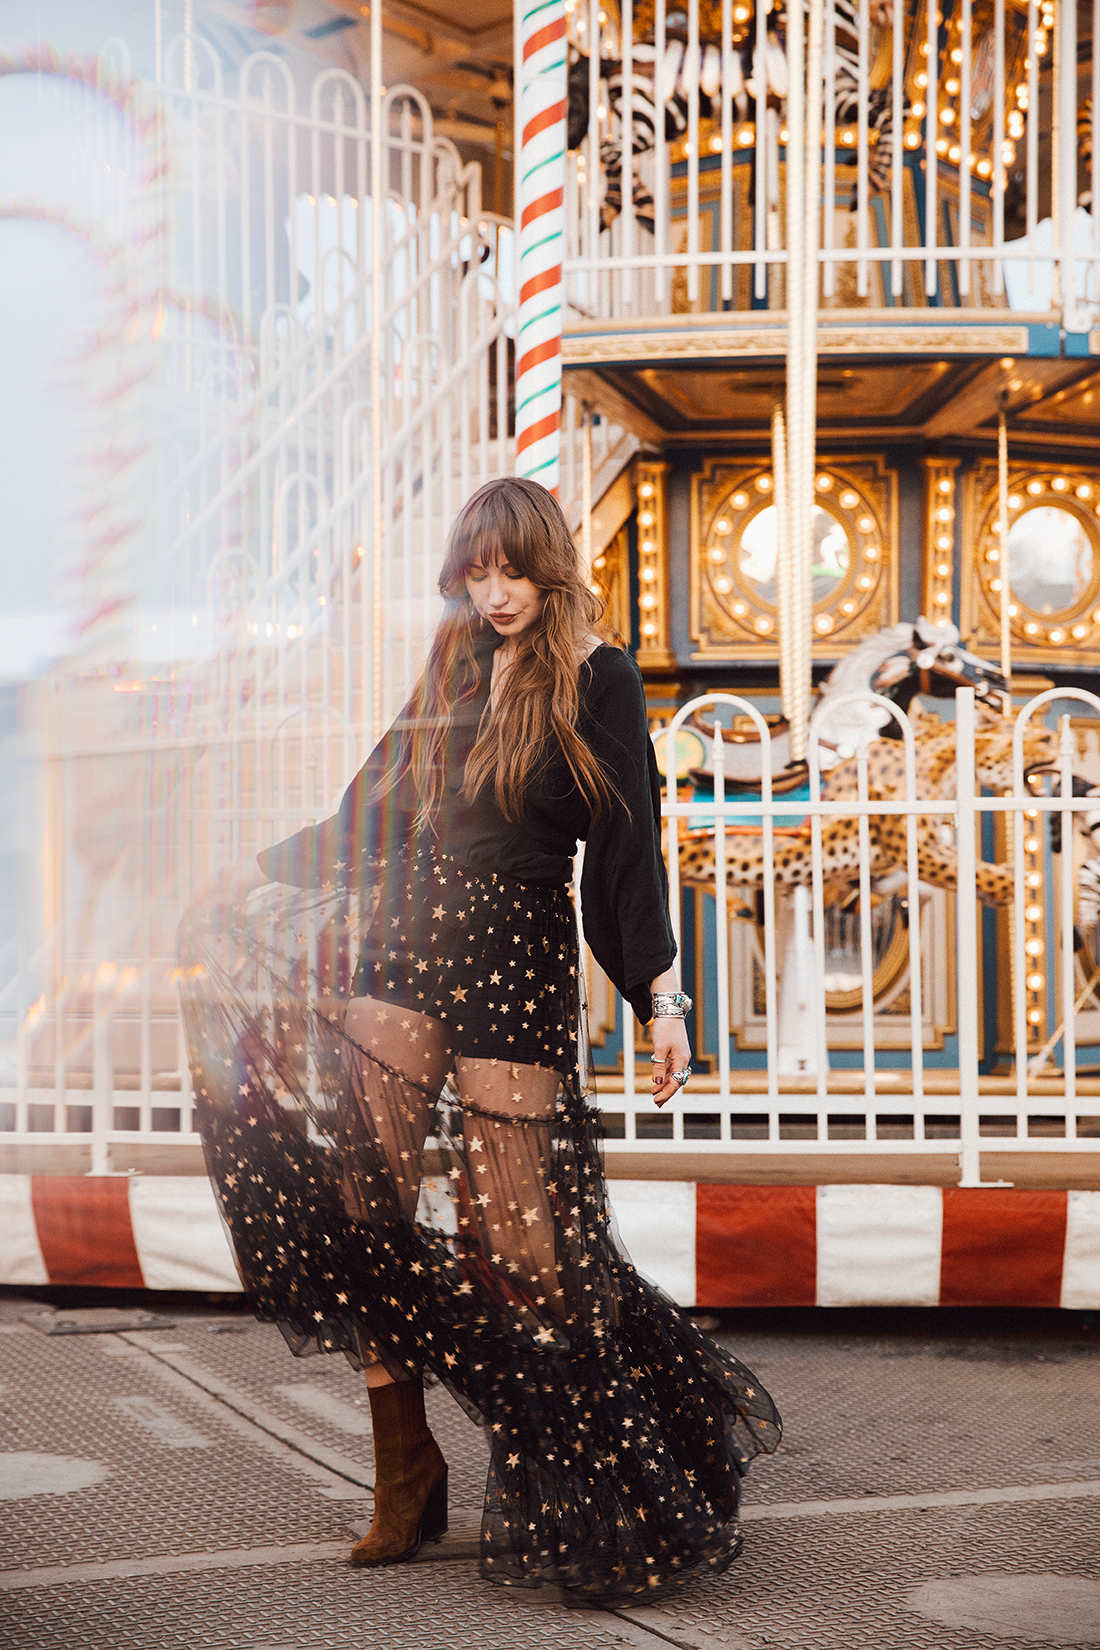 Sara Louise blogger photoshoot shot in Winter Wonderland by London photographer Ailera Stone